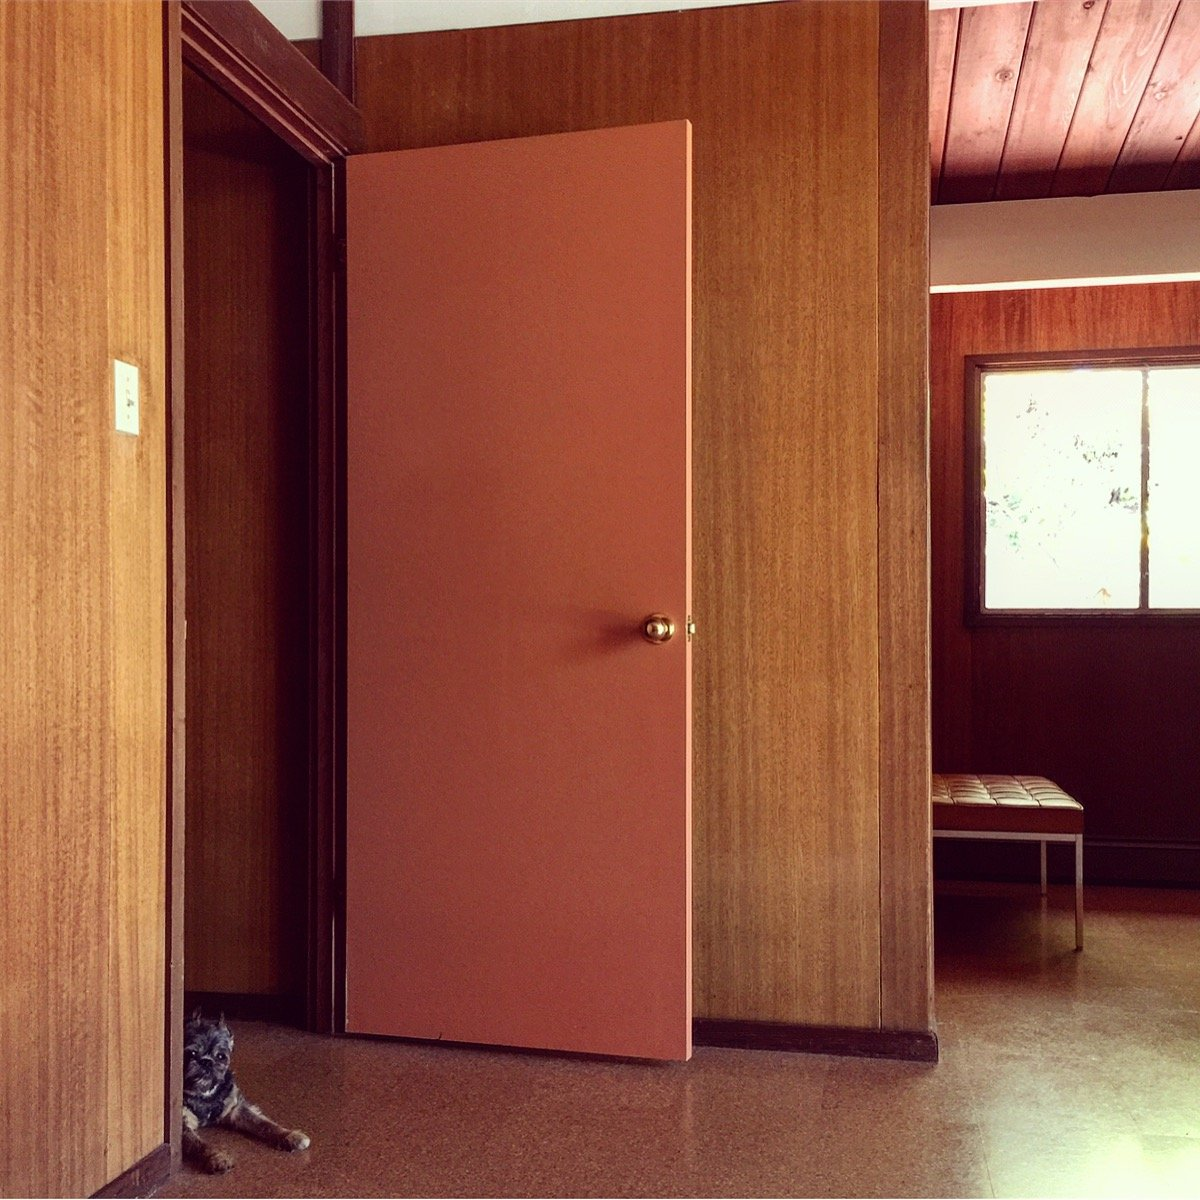 Amy Keeler - Eichler House in Palo Alto - interview - entrance